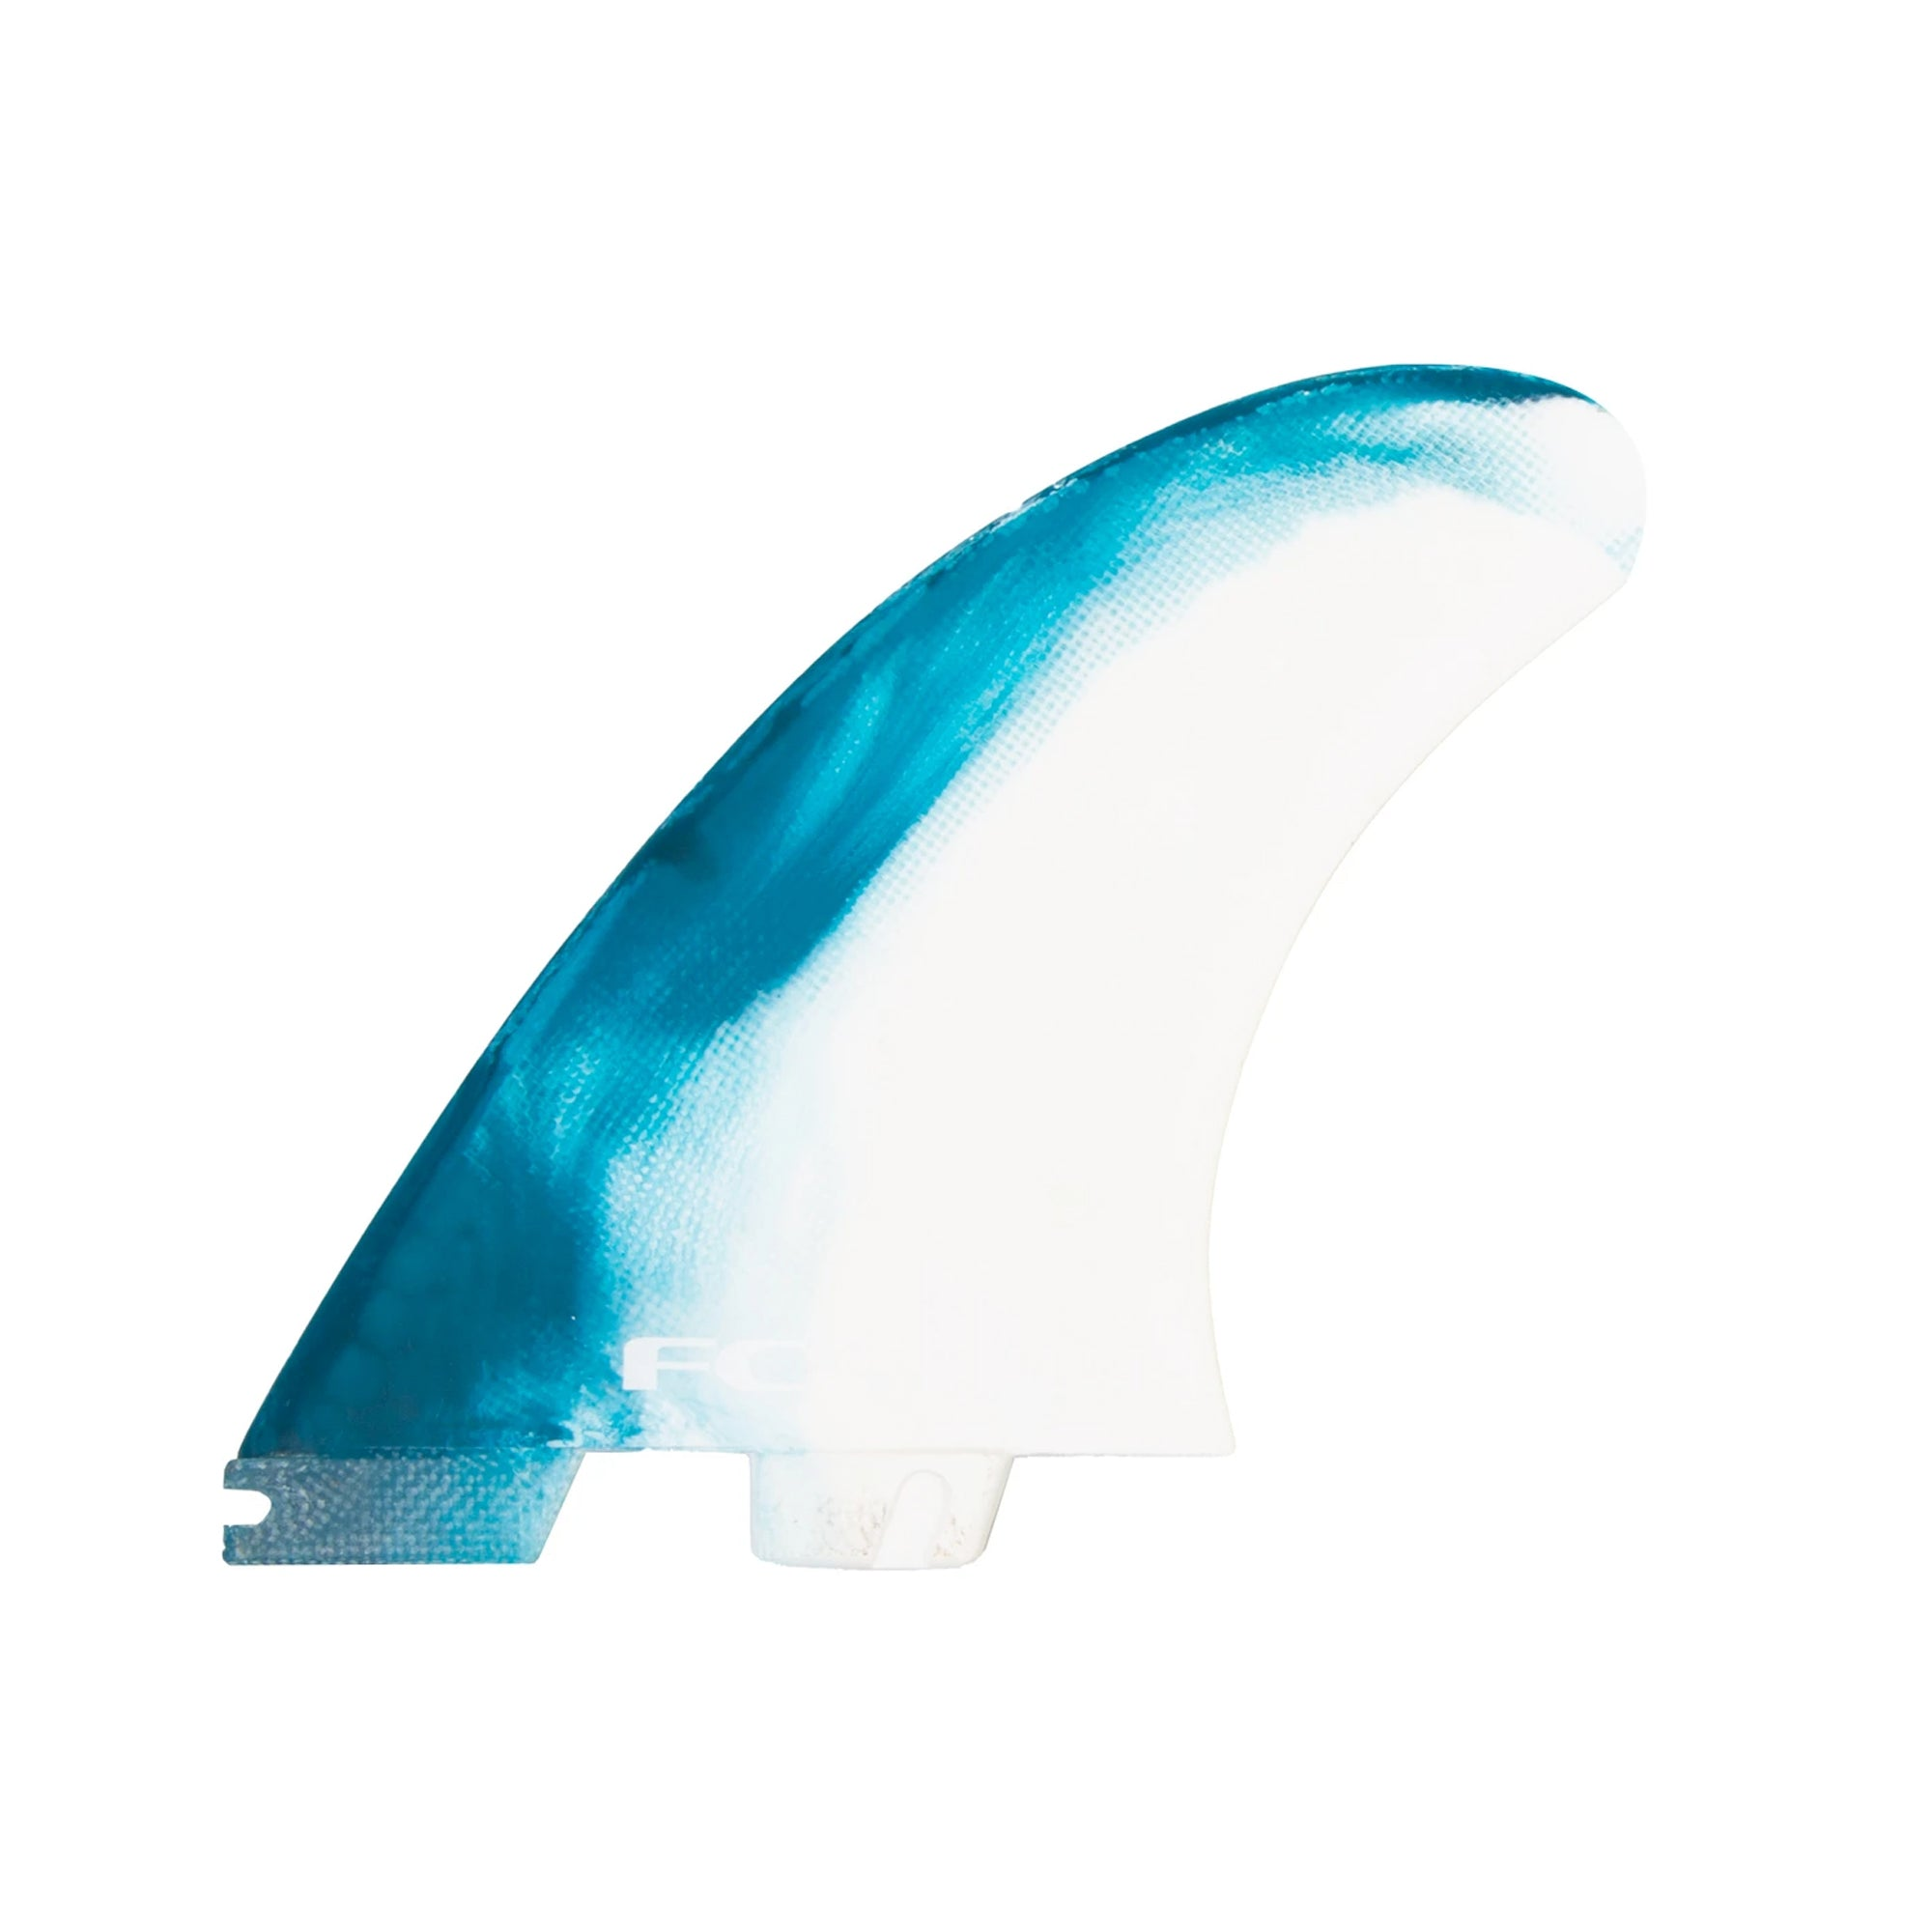 FCS II MR PC X-Large Twin + Stabilizer Fin Set - Dusty Blue